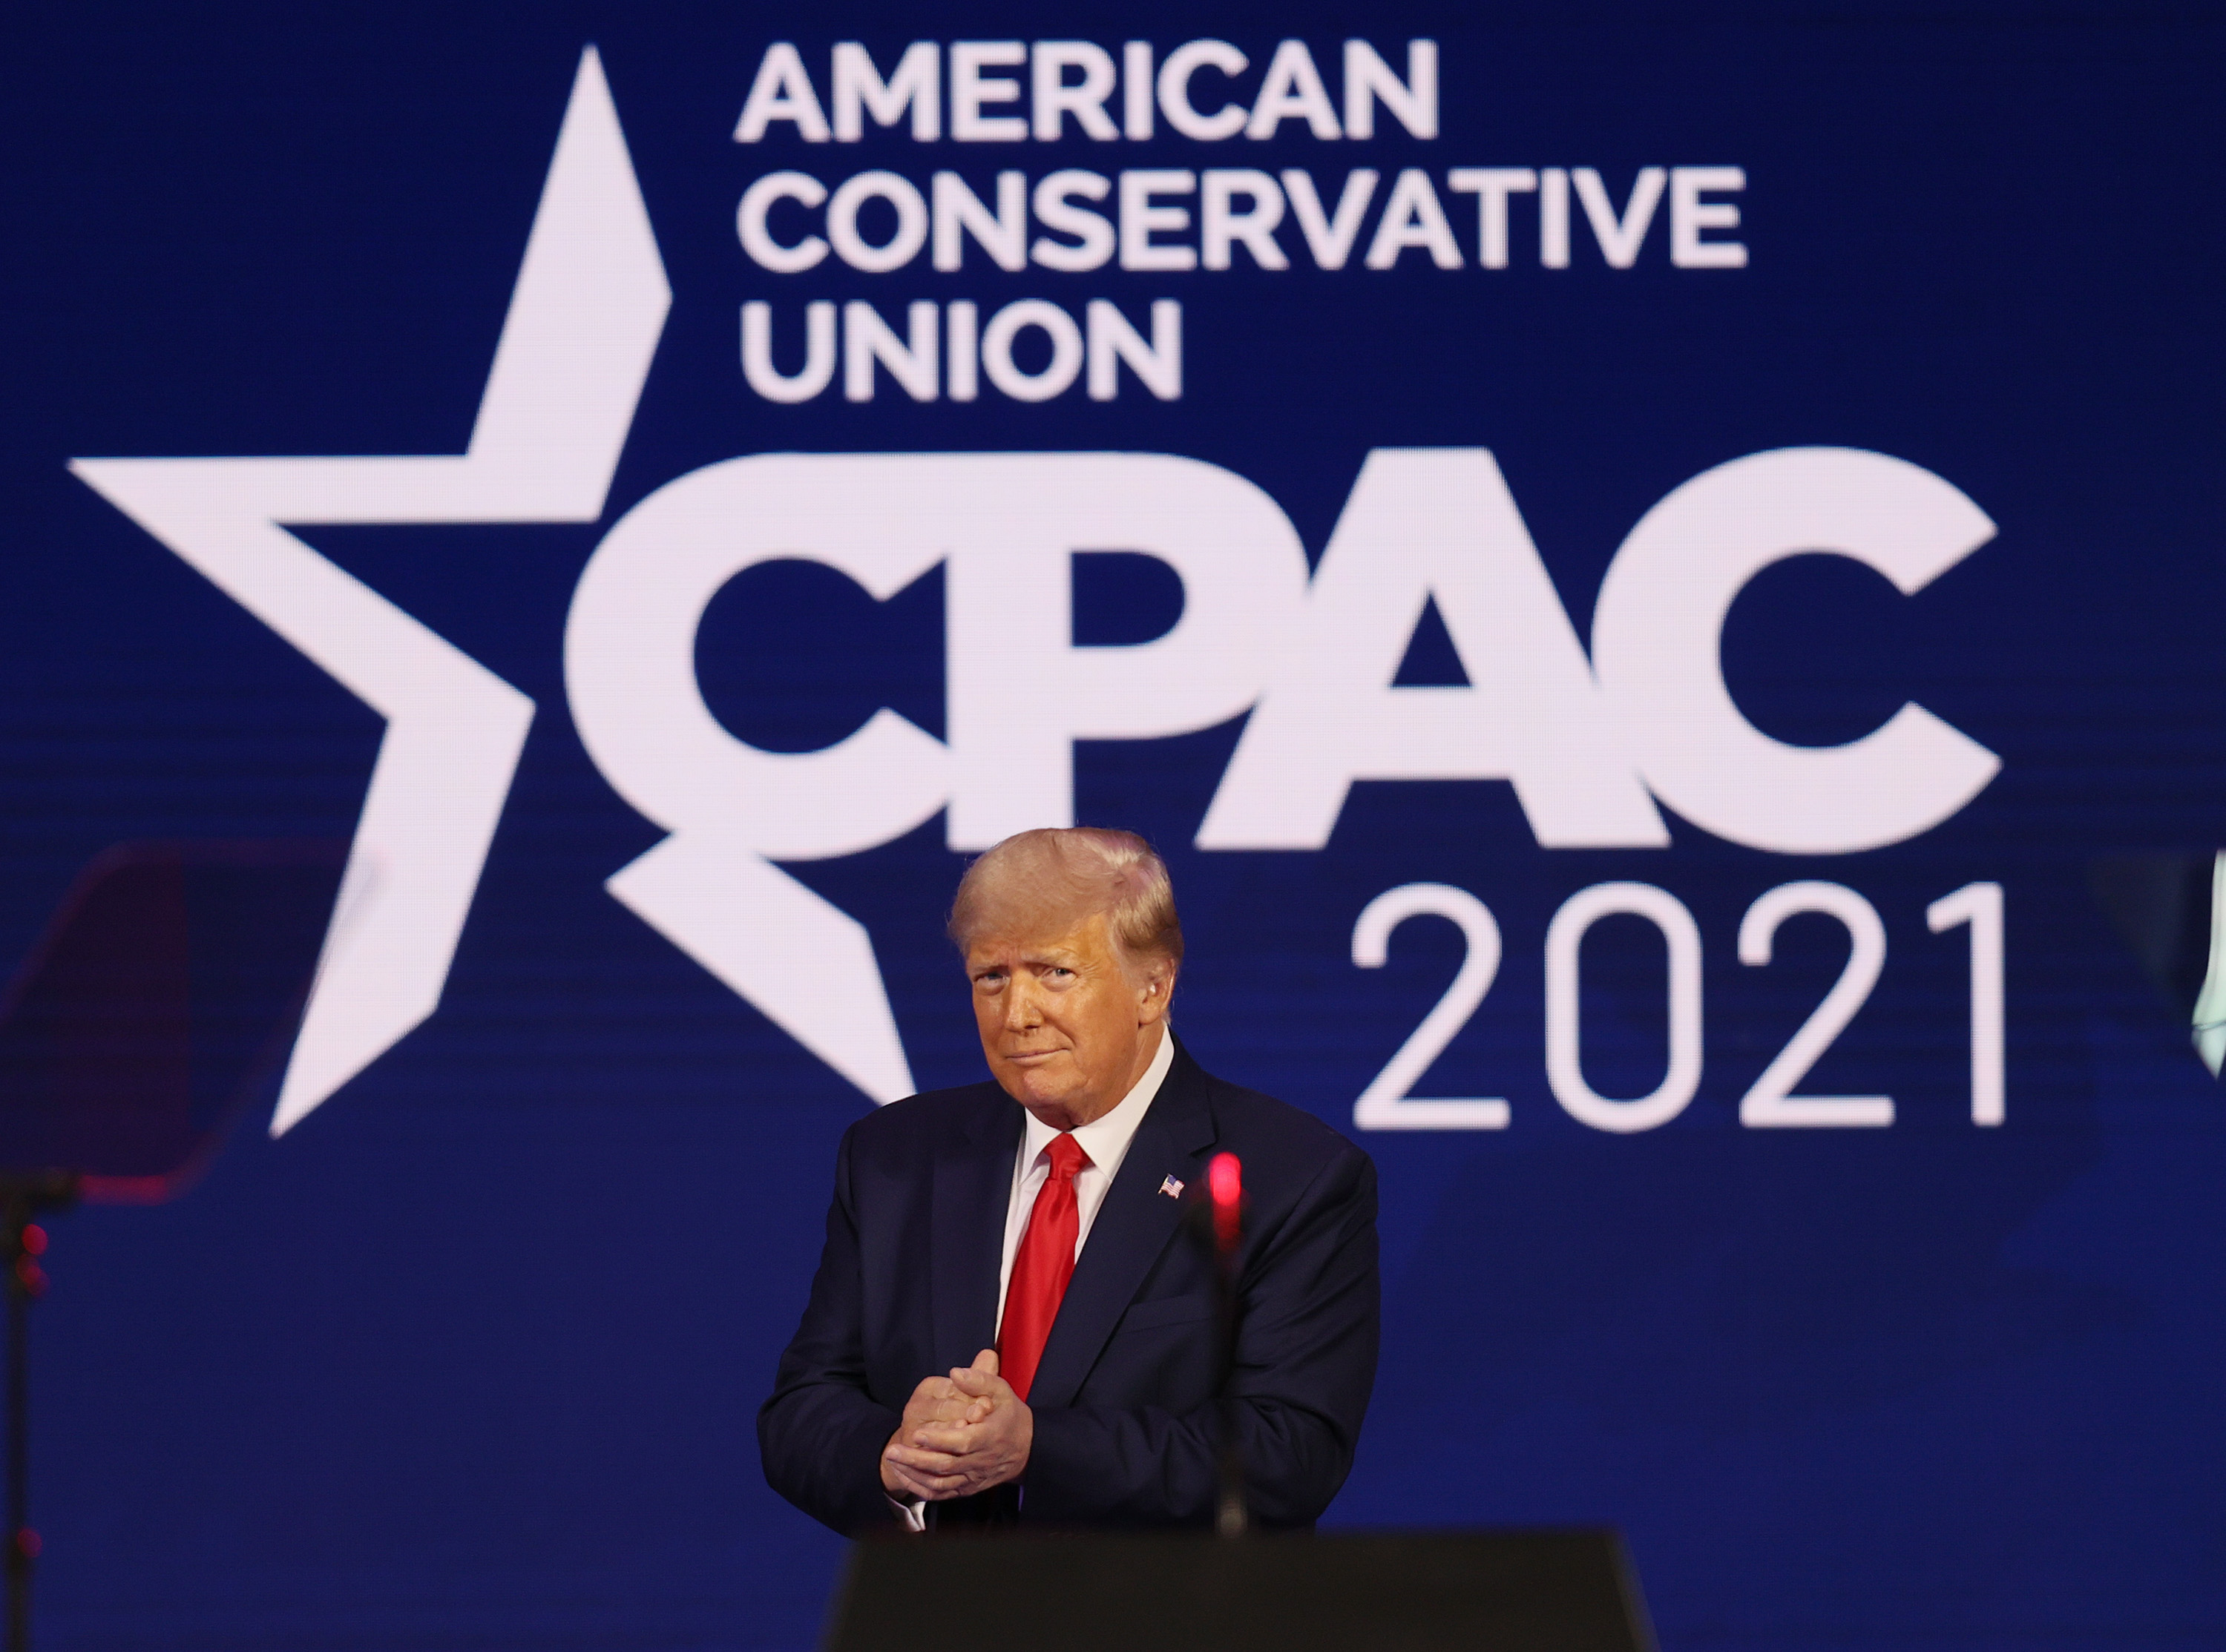 Trump Says GOP Is United While Attacking Republican Leaders in CPAC Speech